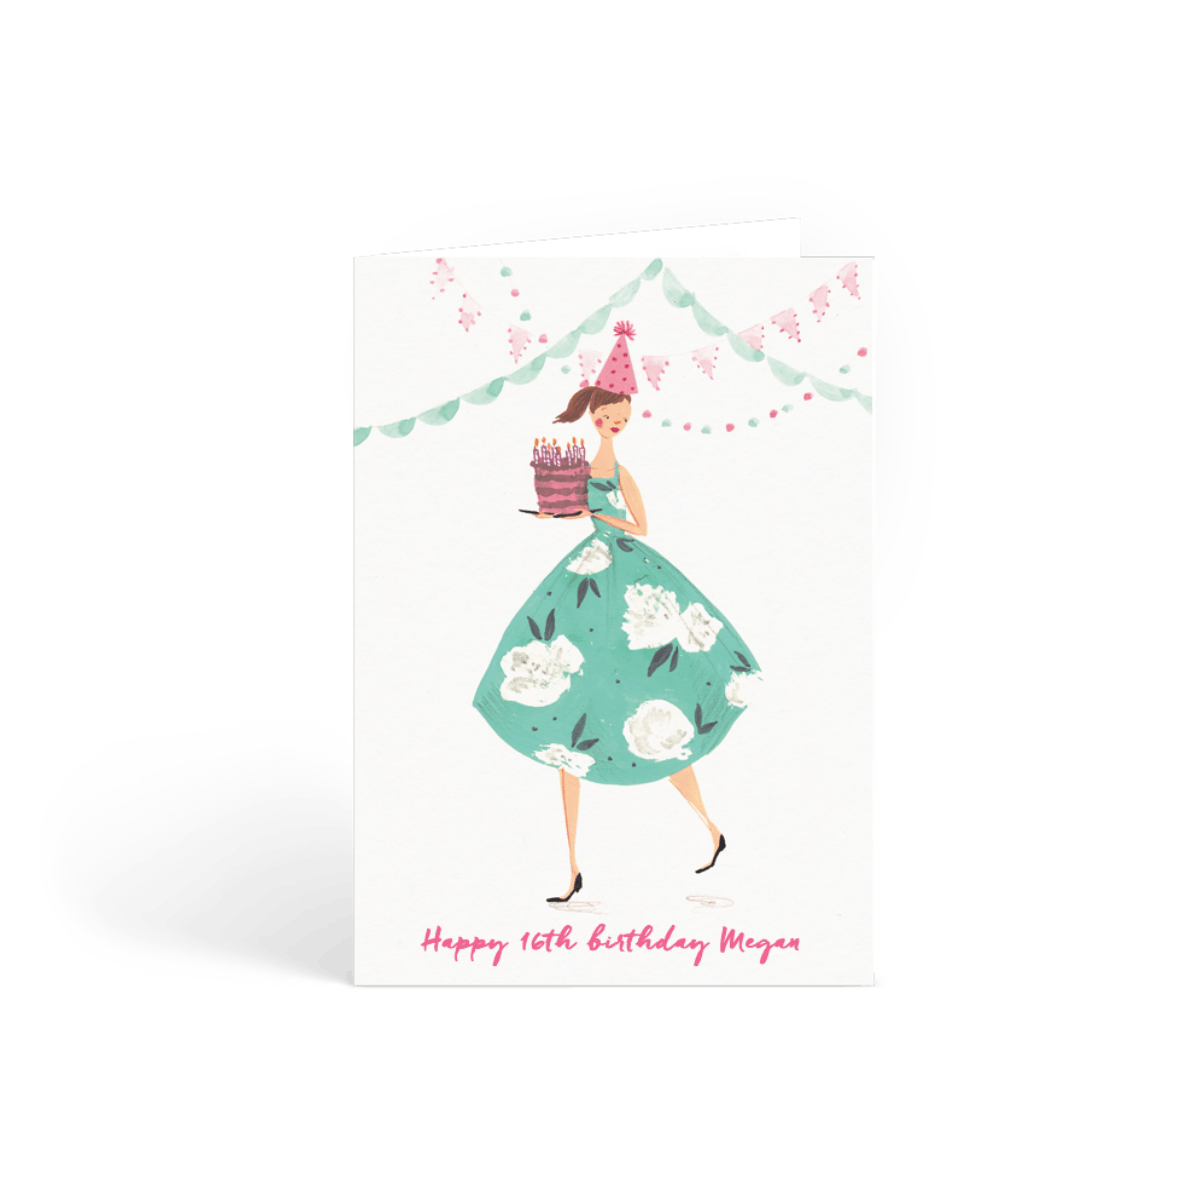 Https%3a%2f%2fwww.papier.com%2fproduct image%2f3197%2f2%2fbirthday girl 867 front 1453910700.png?ixlib=rb 1.1